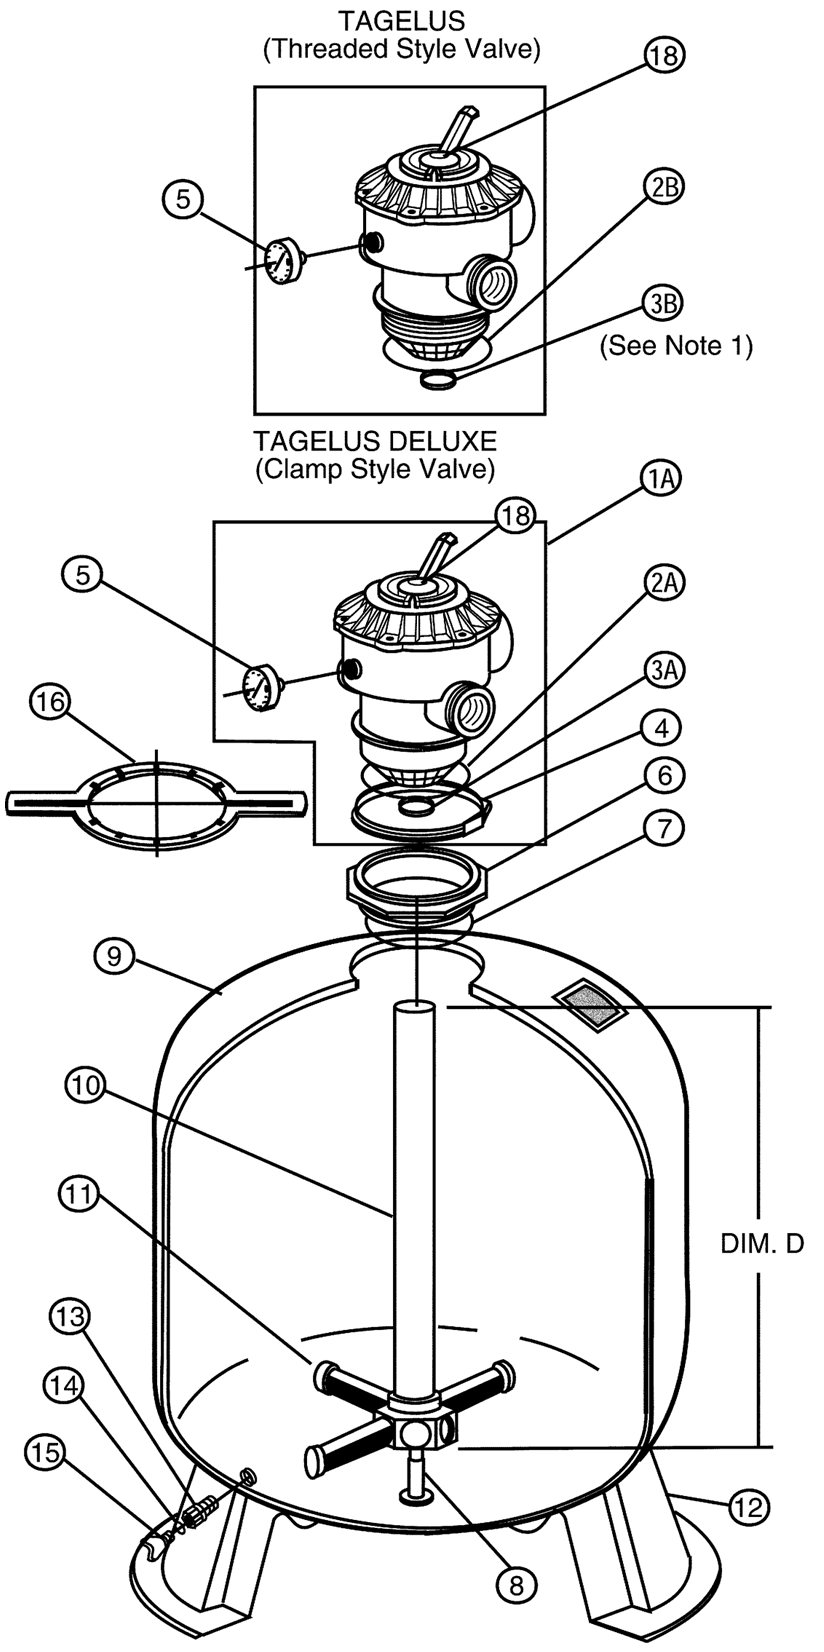 pentair tagelus pool filter parts